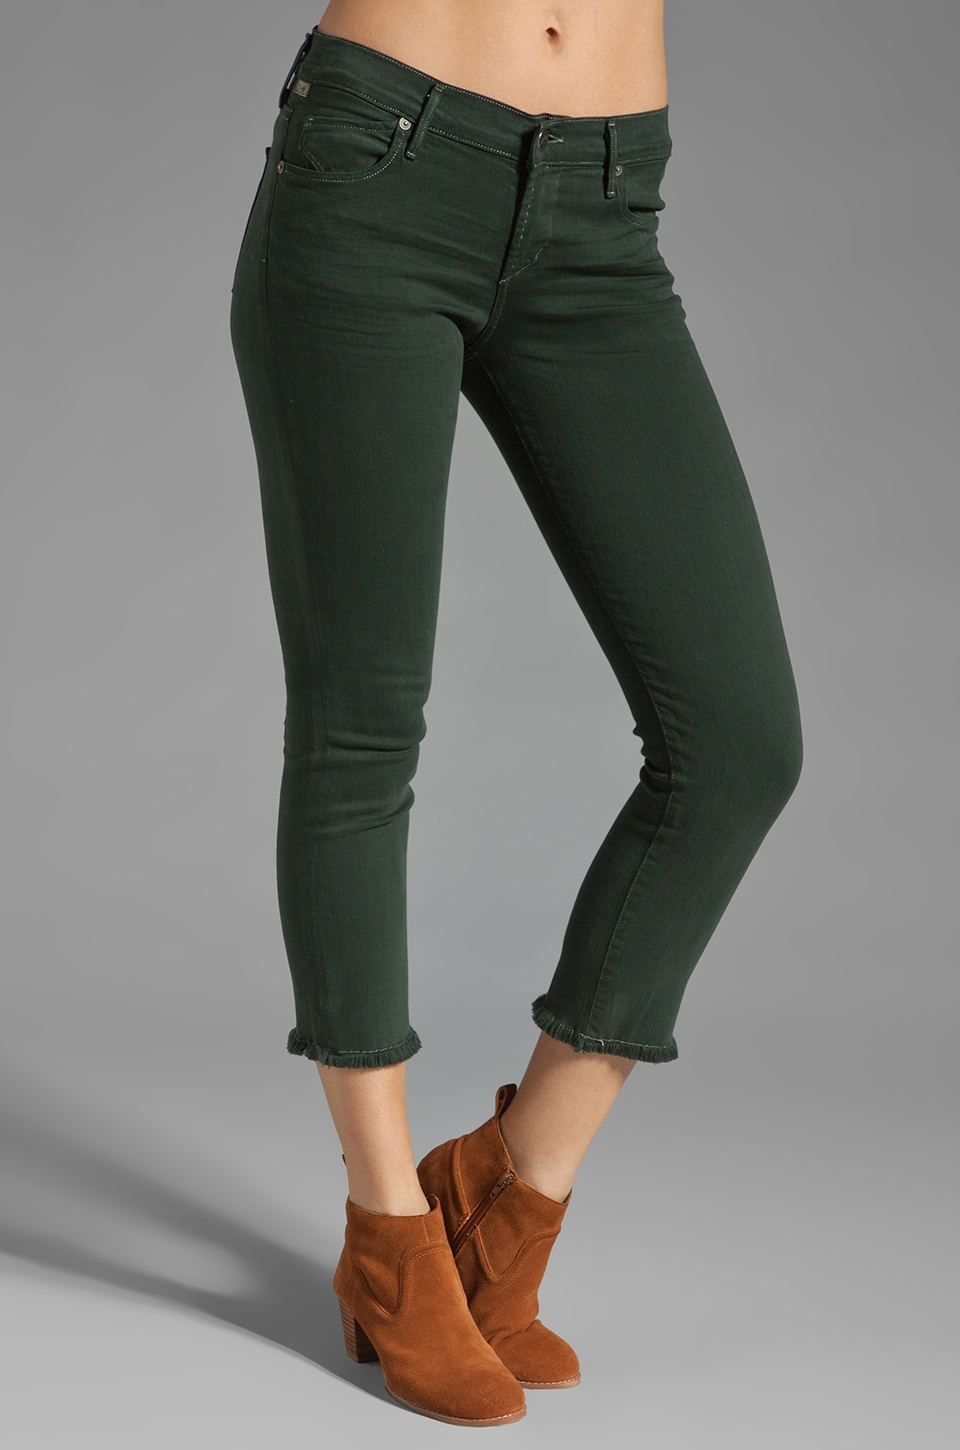 Citizens of Humanity Avedon Skinny Cut Off in Jaguar Green